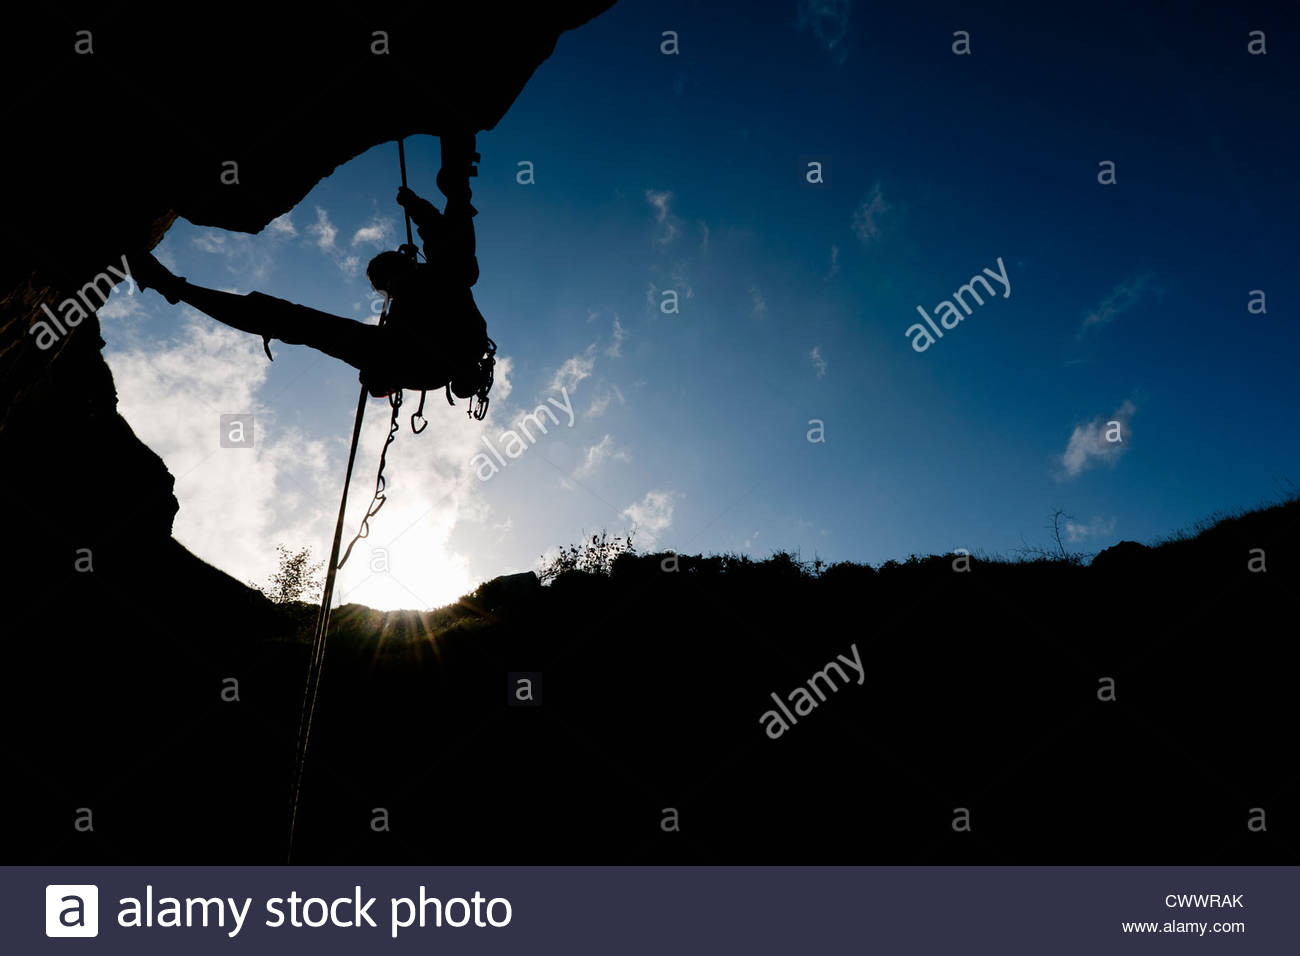 Climber scaling rock face - Stock Image